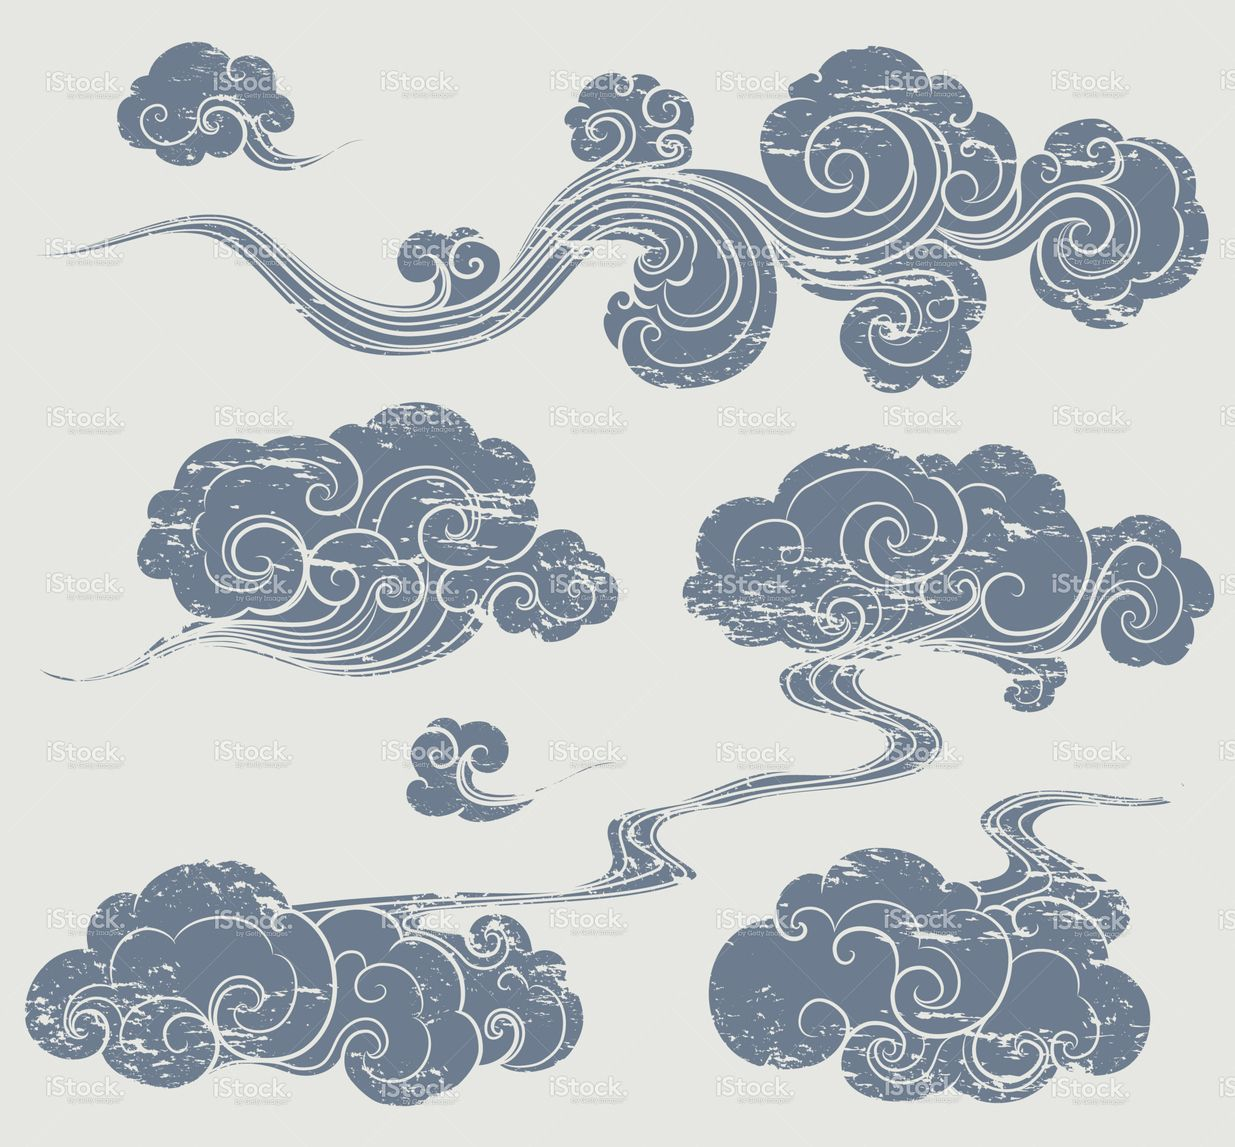 A set of grunge cloud graphics in oriental style for Chinese clouds tattoos